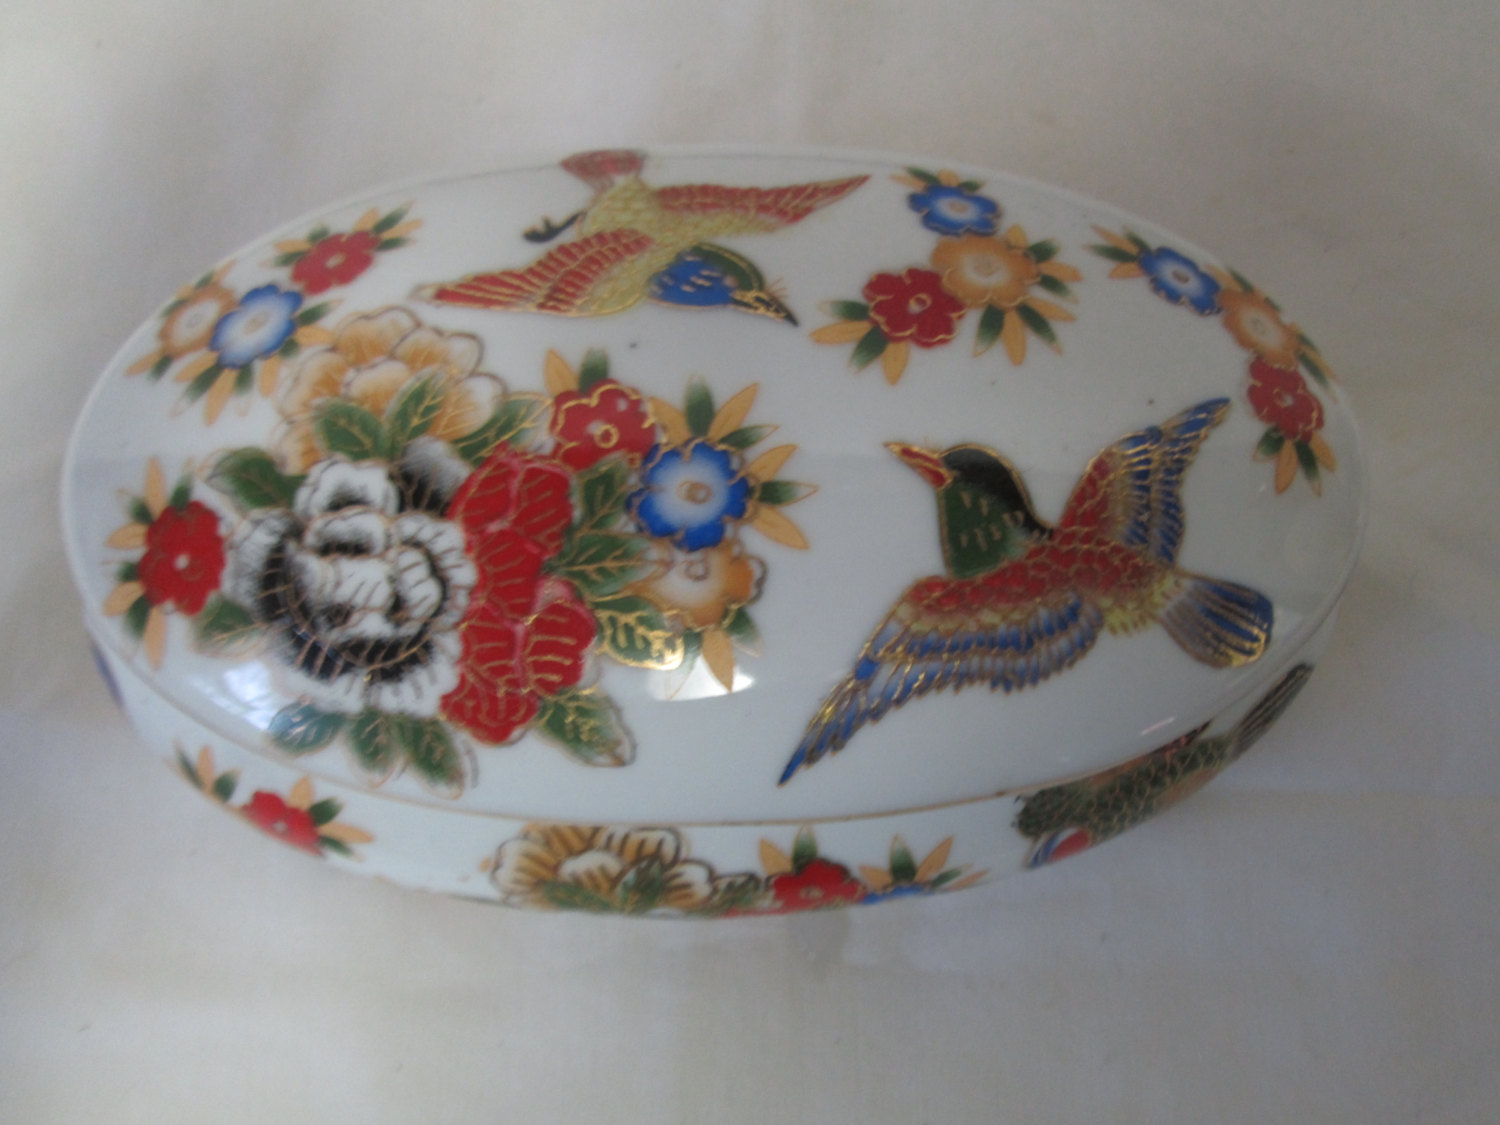 Beautiful japanese covered trinket or jewely dish bird and flowers bright and vivid colors fine china 1940's Oval